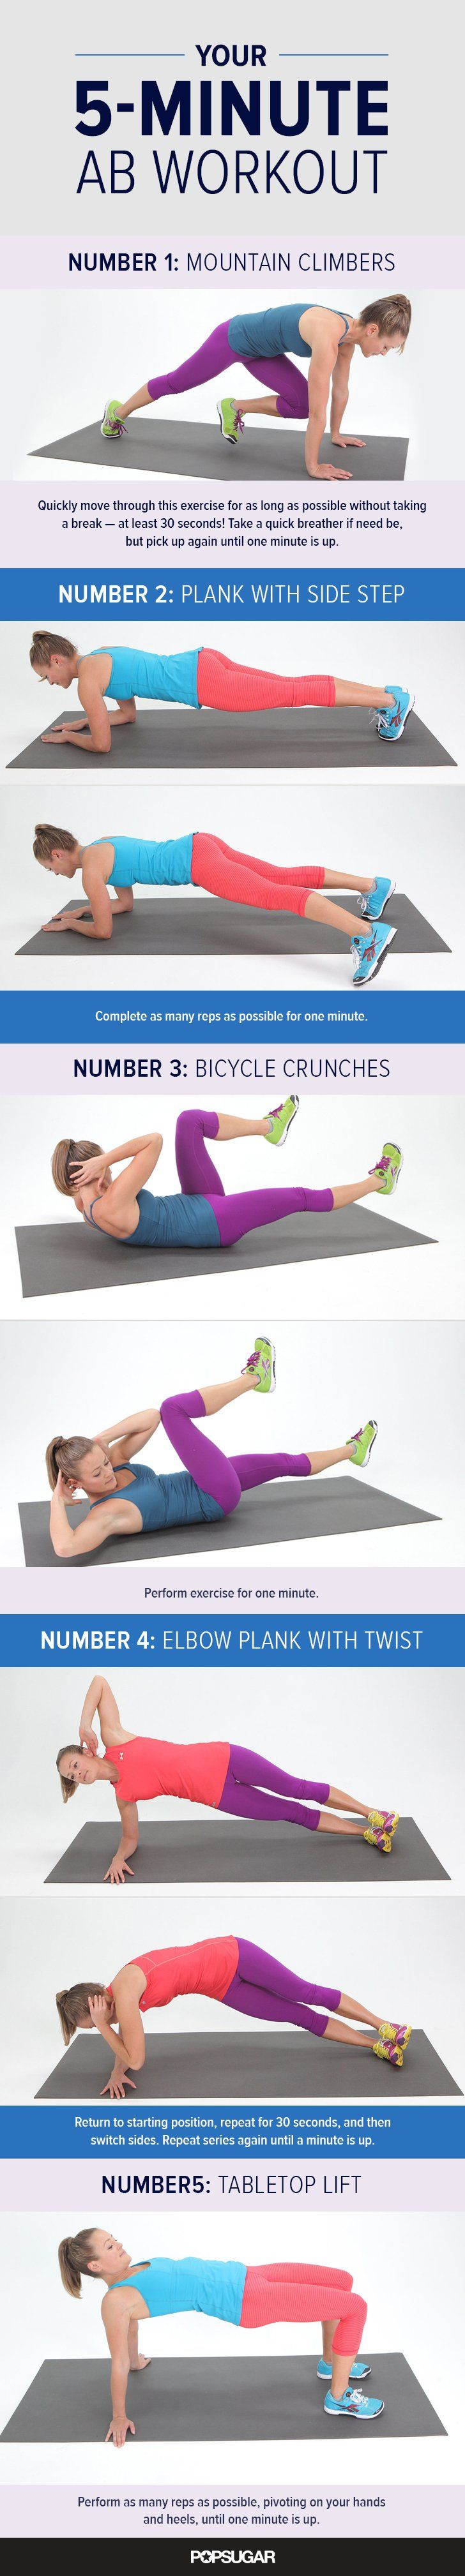 A 5-Minute Ab Workout For Busy Mornings